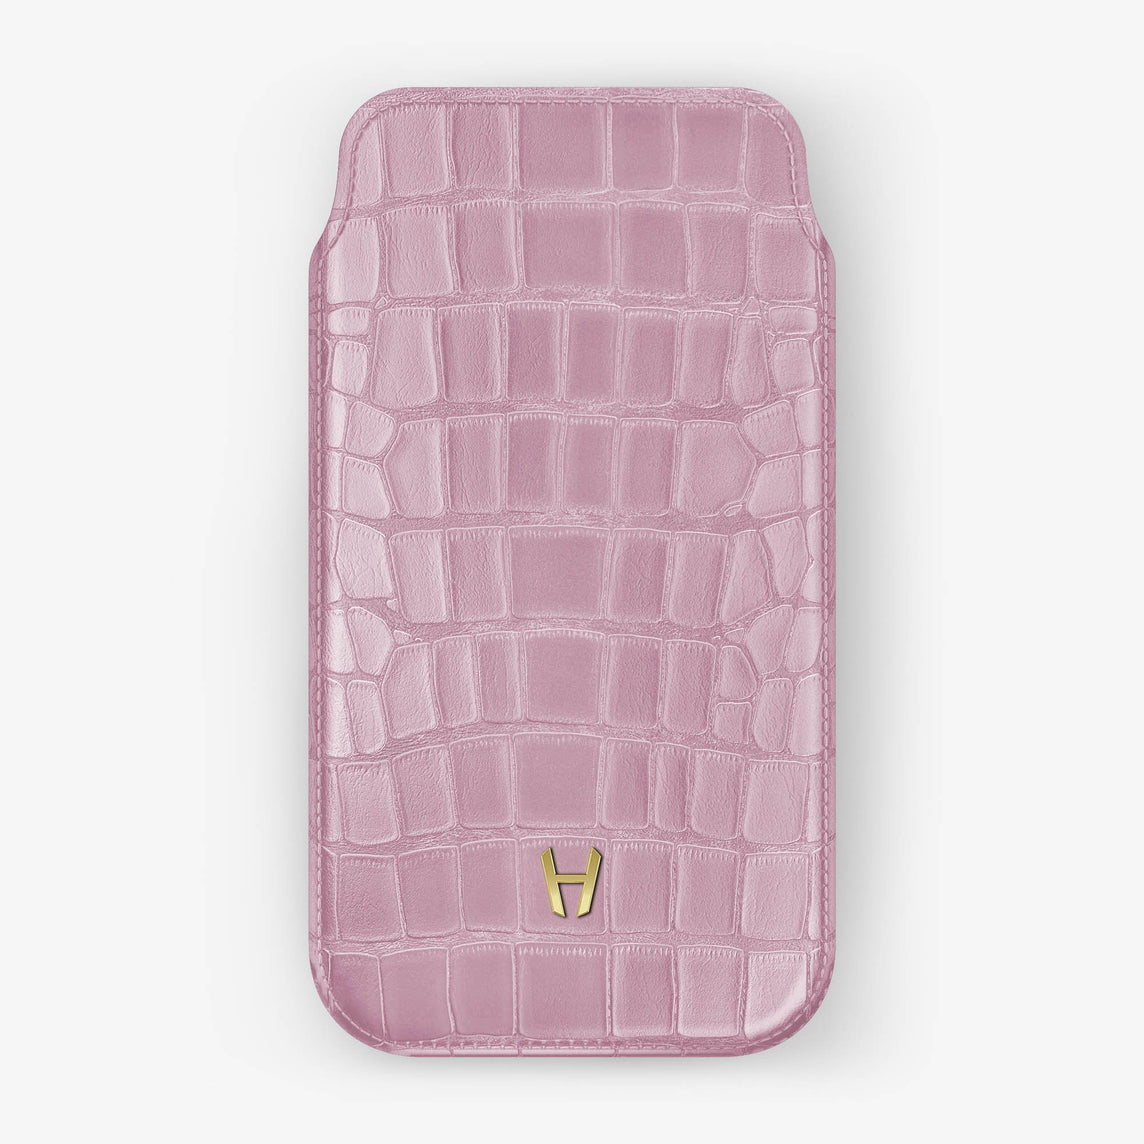 Alligator [iPhone Sleeve Case] [model:iphone-xr-case] [colour:pink] [finishing:yellow-gold]